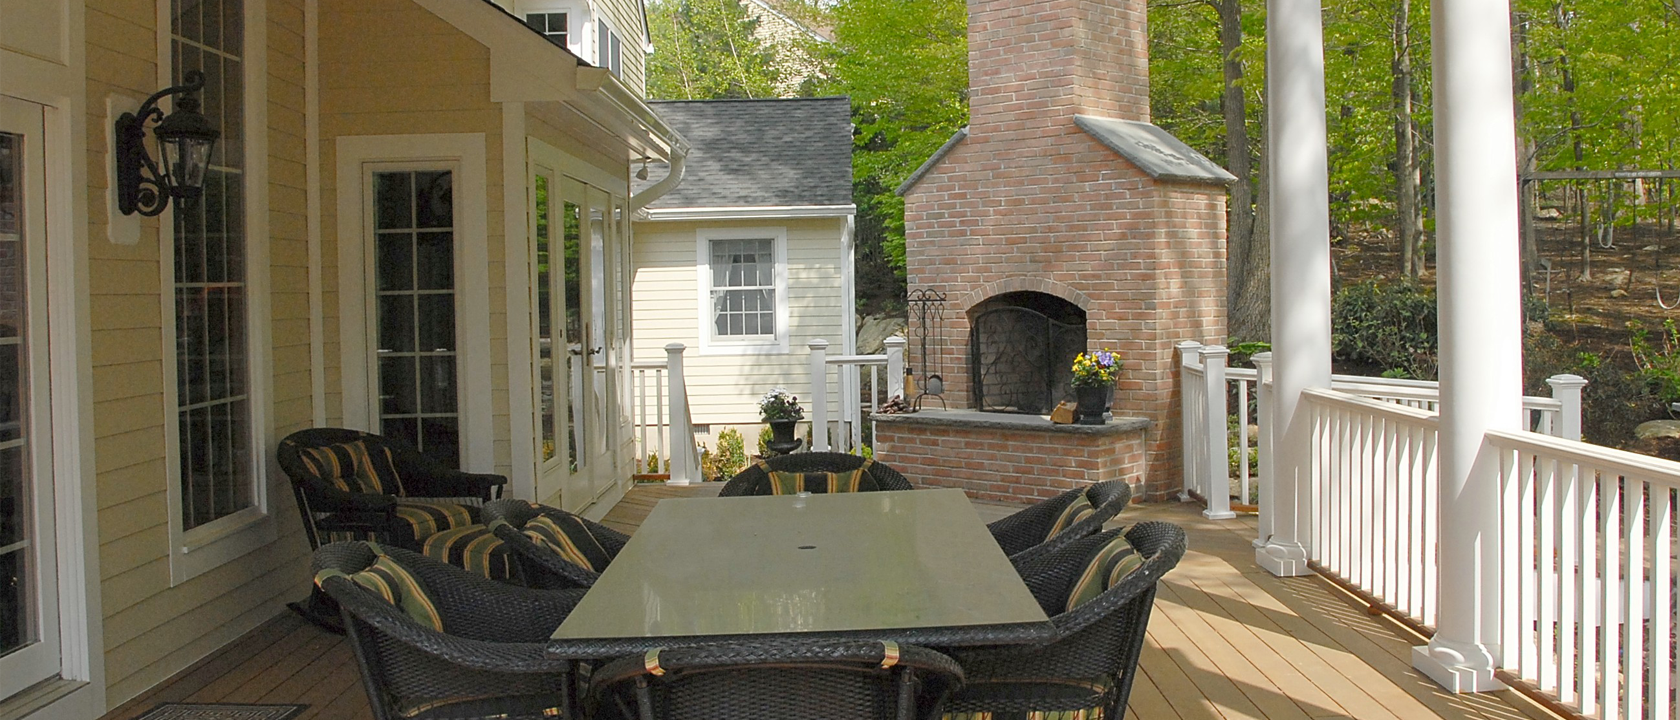 Homepage Slider Image: Outdoor FirePlace